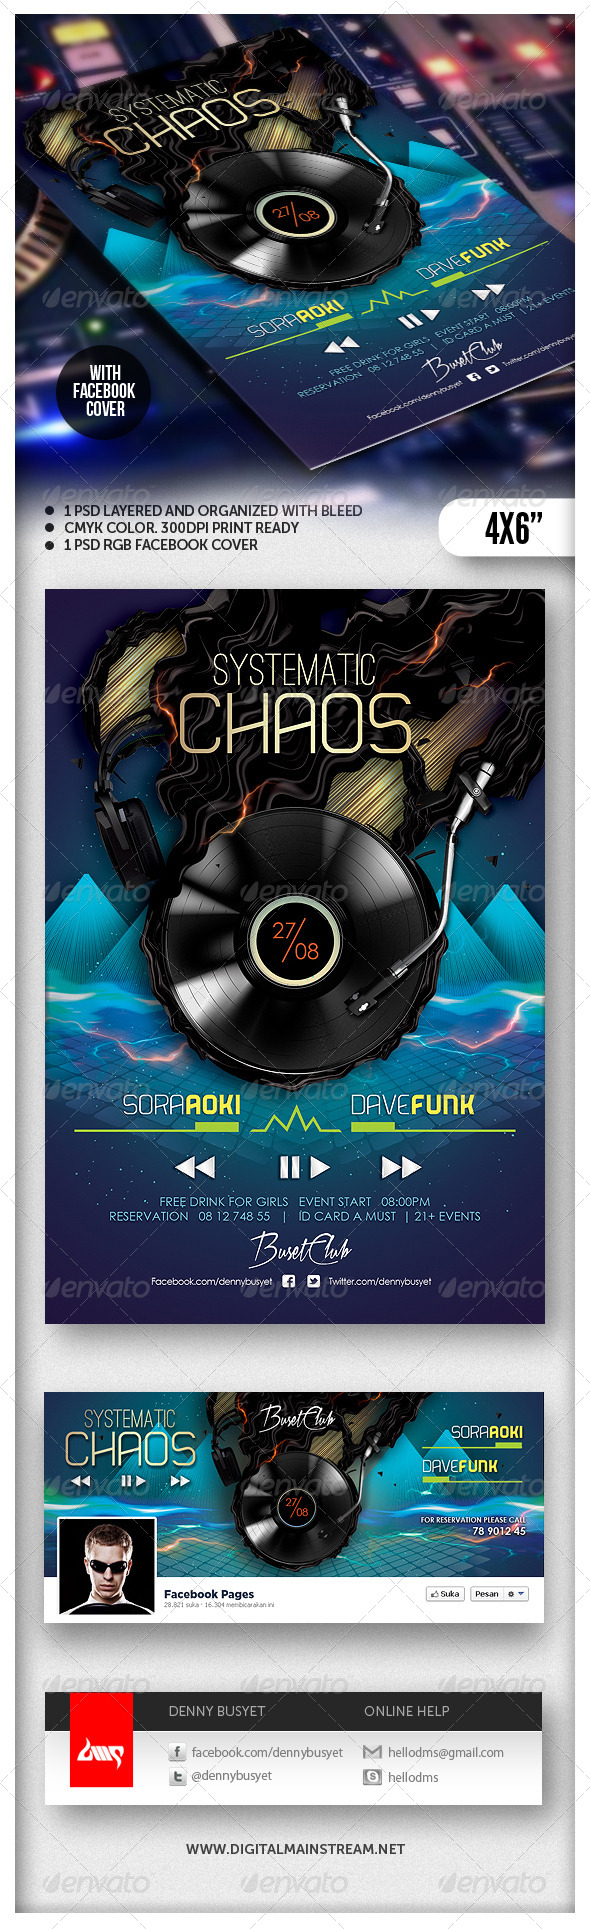 Systematic Chaos Nightclub Flyer Template - Events Flyers